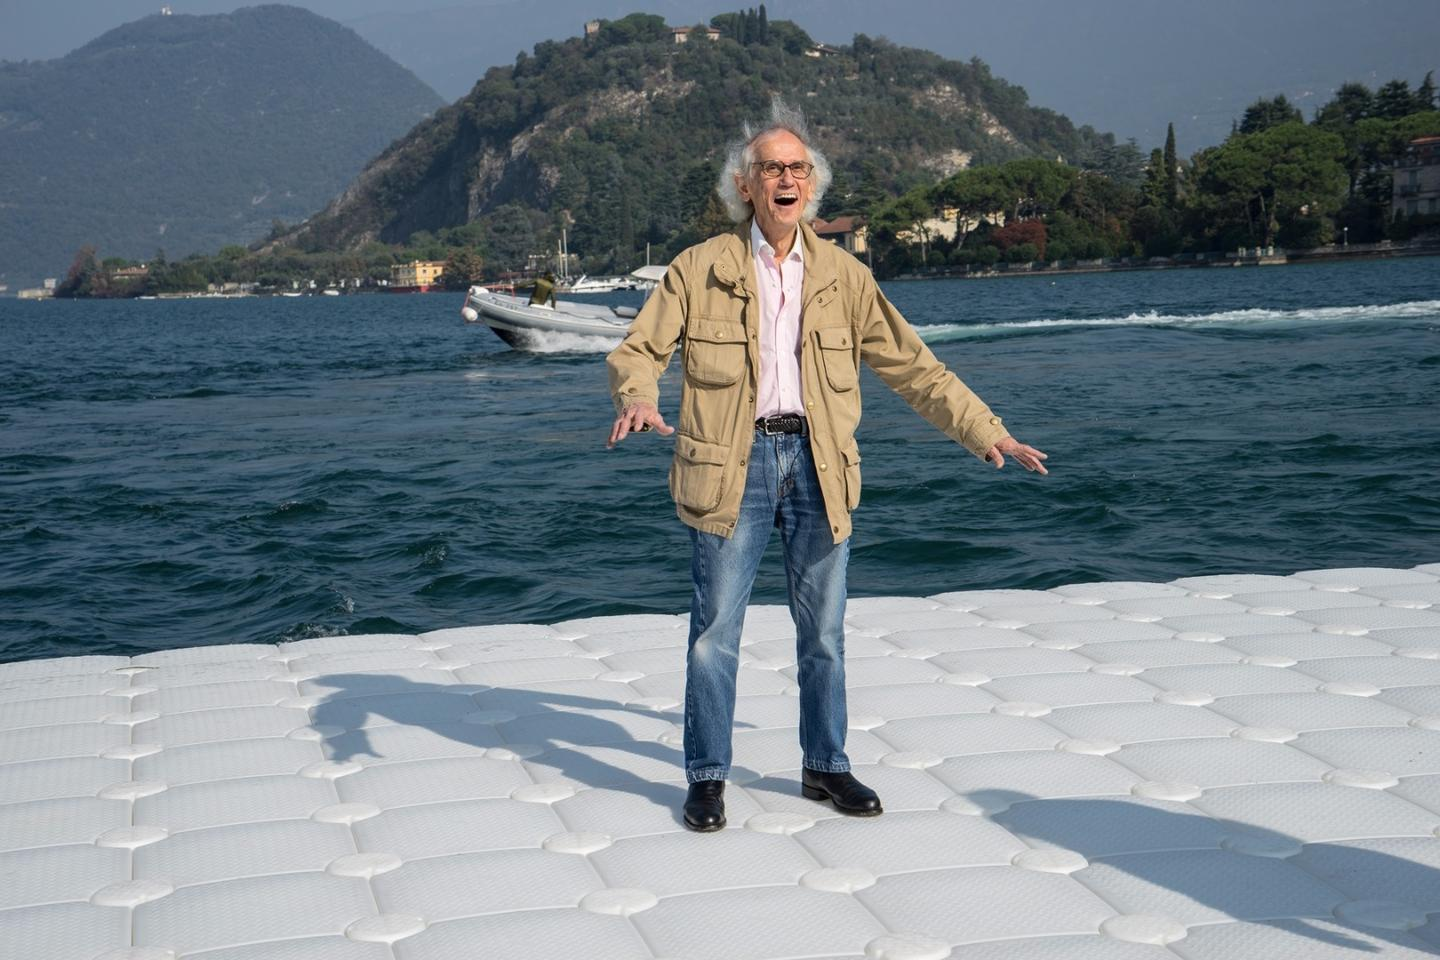 The Floating Piers was designed by artists Christo (pictured)and Jeanne-Claude